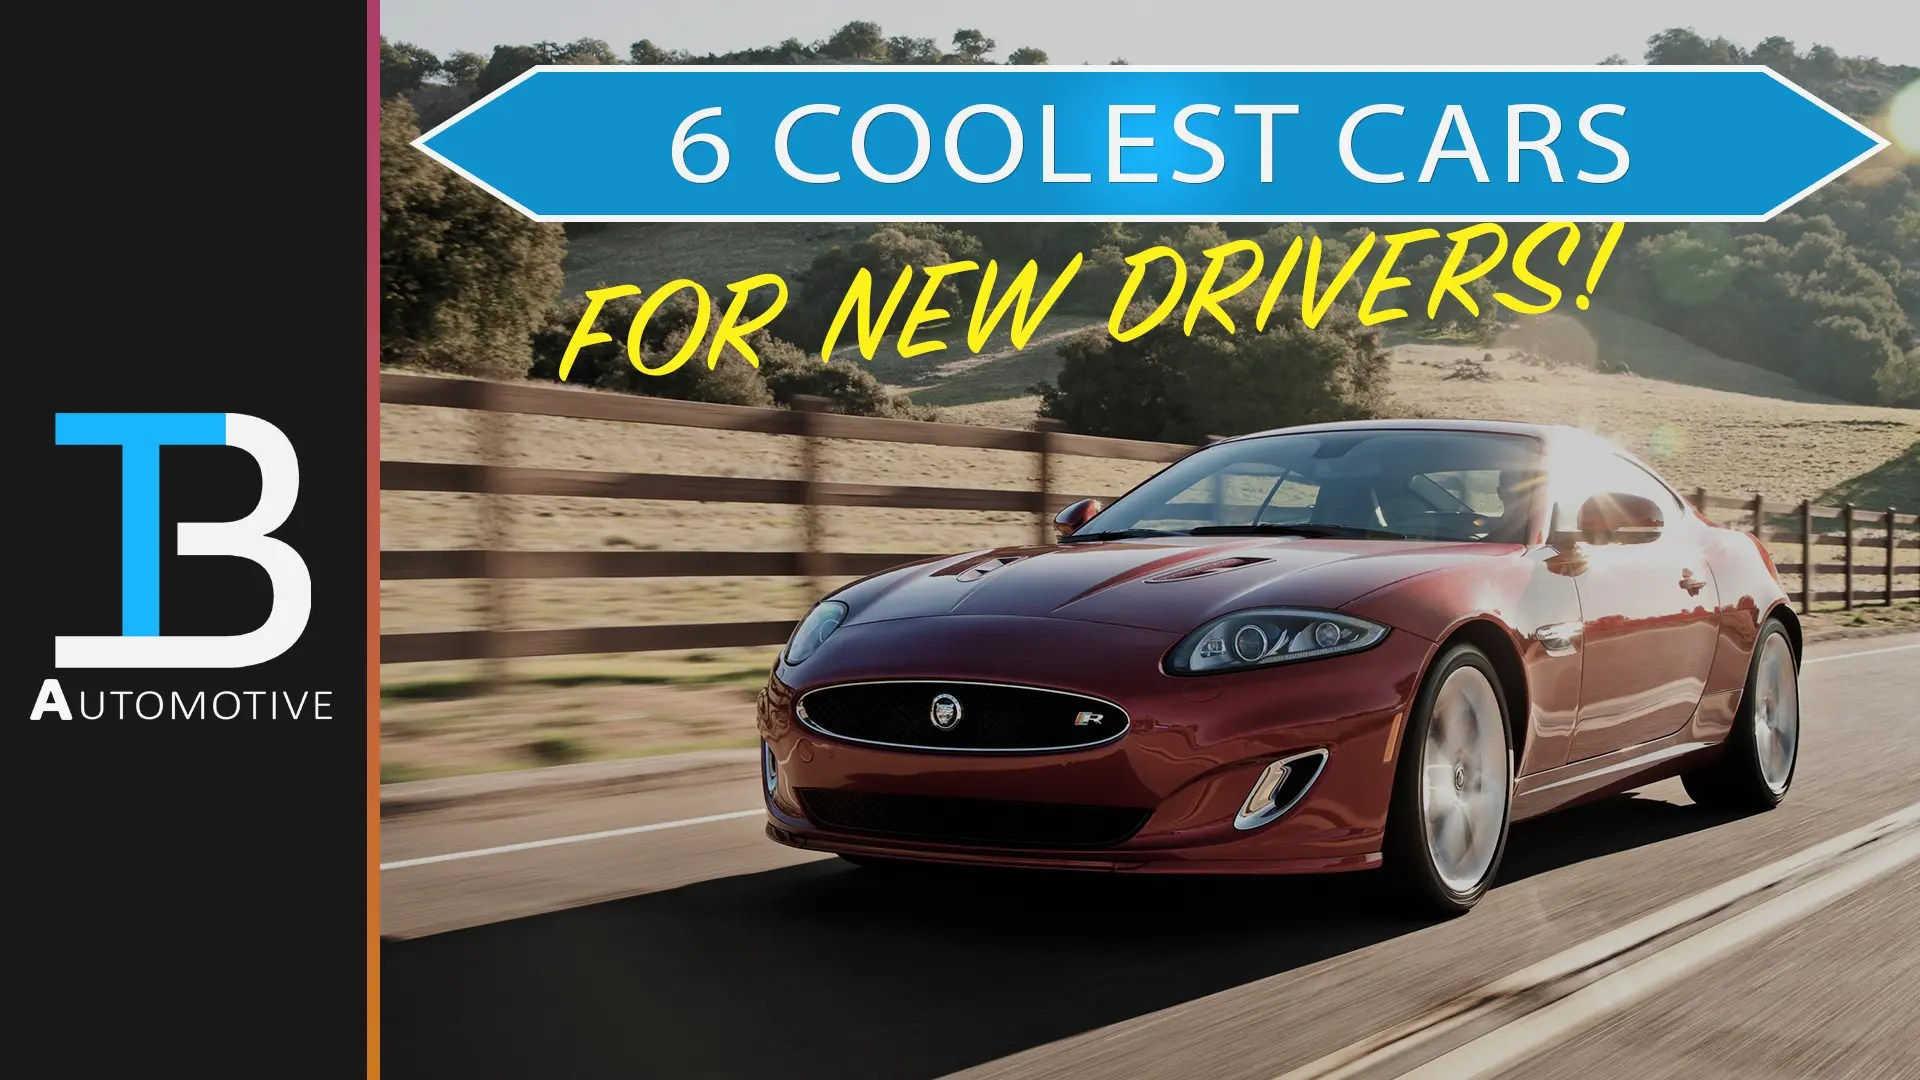 6 Coolest Cars For New Drivers Thebreakdown Xyz